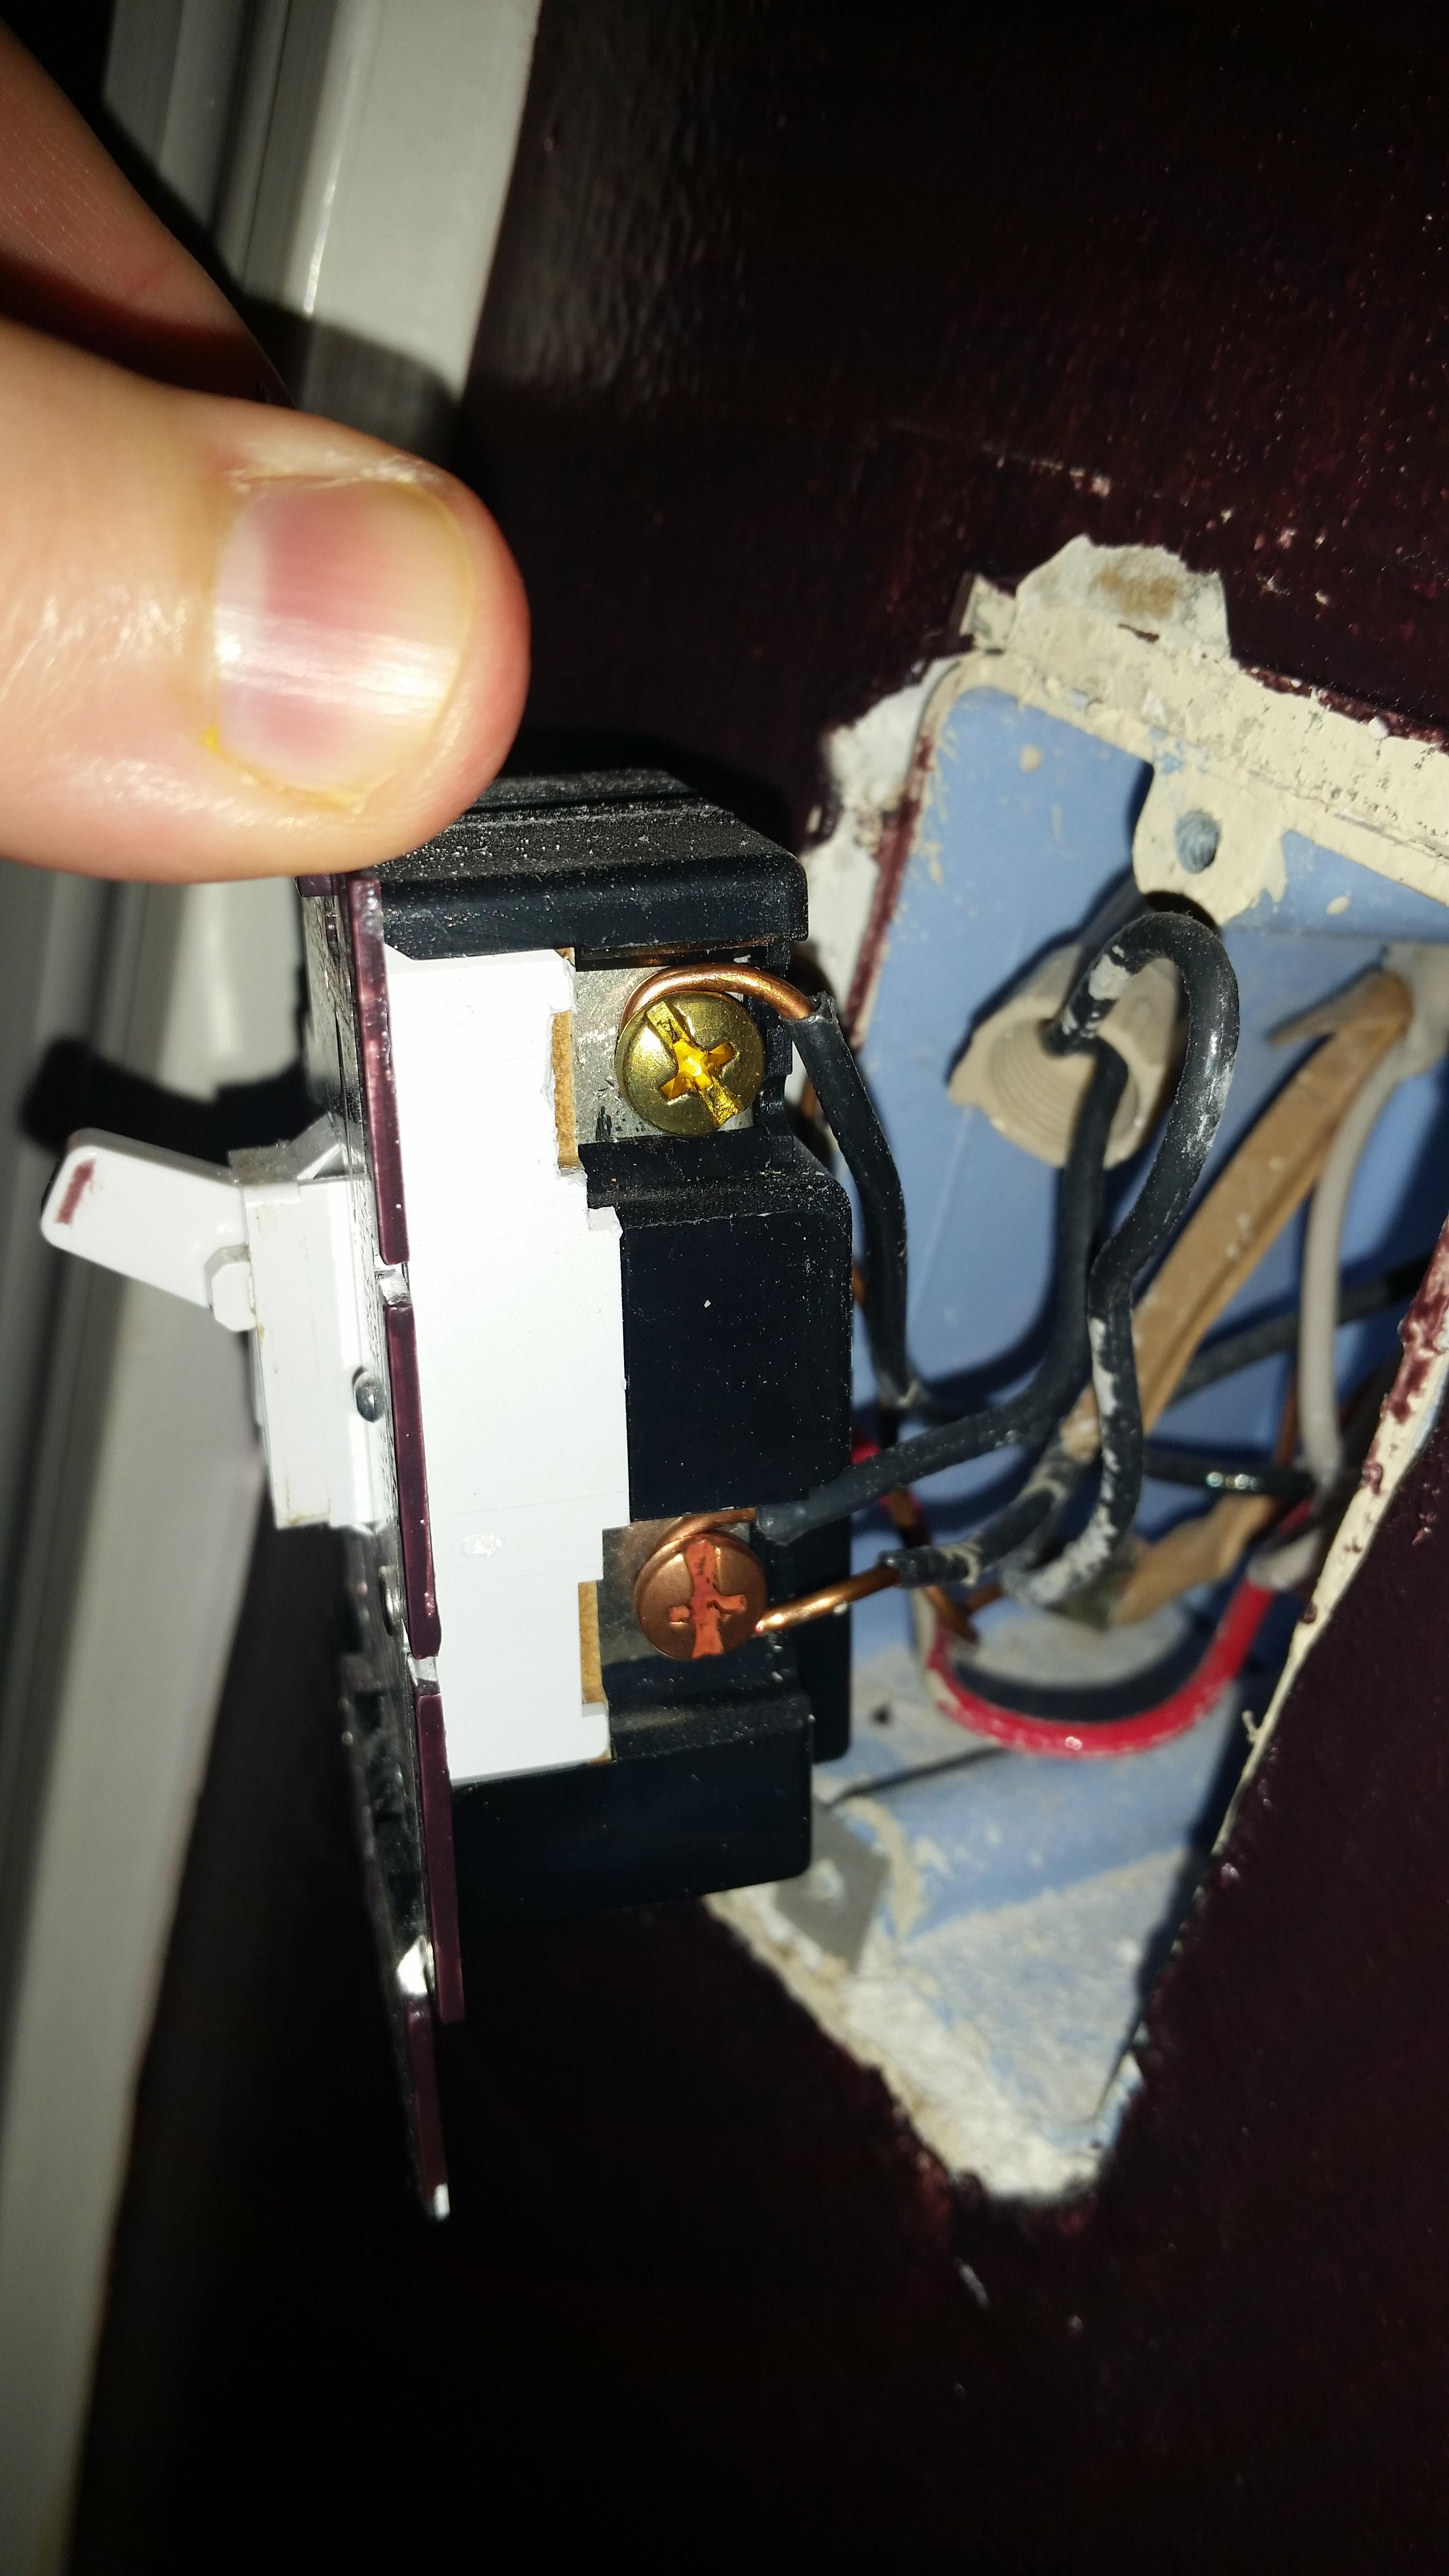 Stupendous Electrical Replacing 3 Way Dimmer Switch With 3 Way Switch Home Wiring Cloud Timewinrebemohammedshrineorg